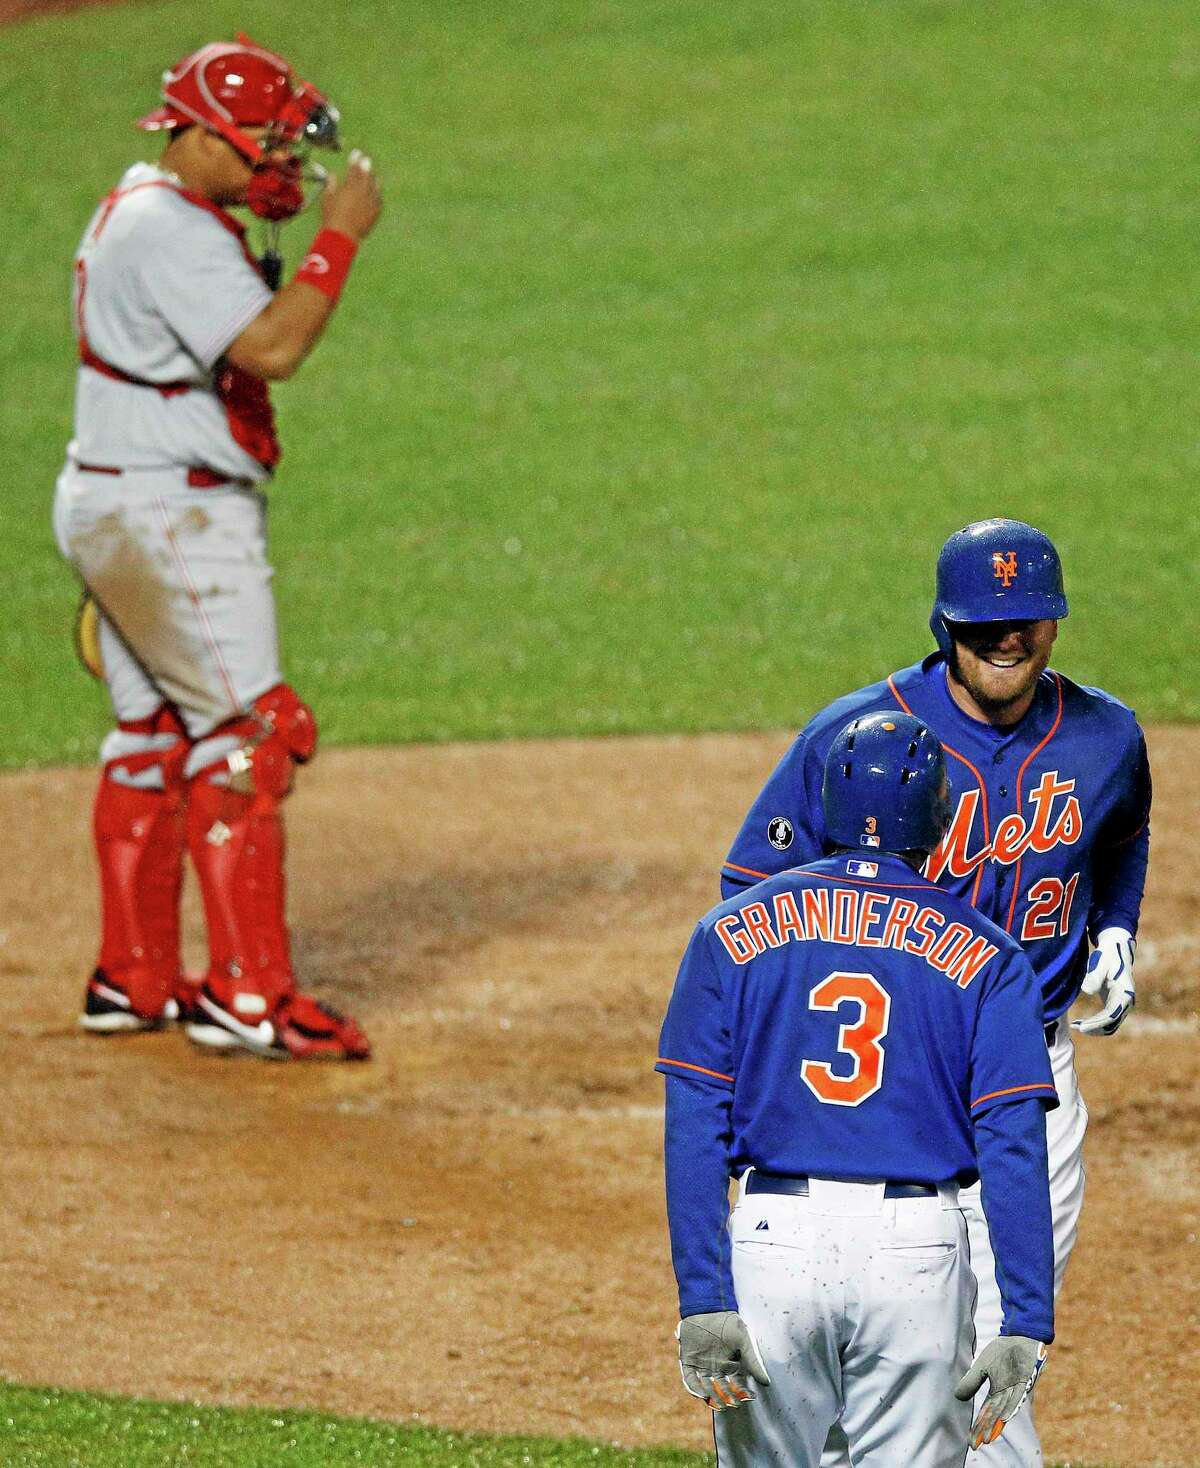 New York Mets first baseman Lucas Duda (21) is greeted by teammate Curtis Granderson (3) after hitting a two-run home run against the Cincinnati Reds.